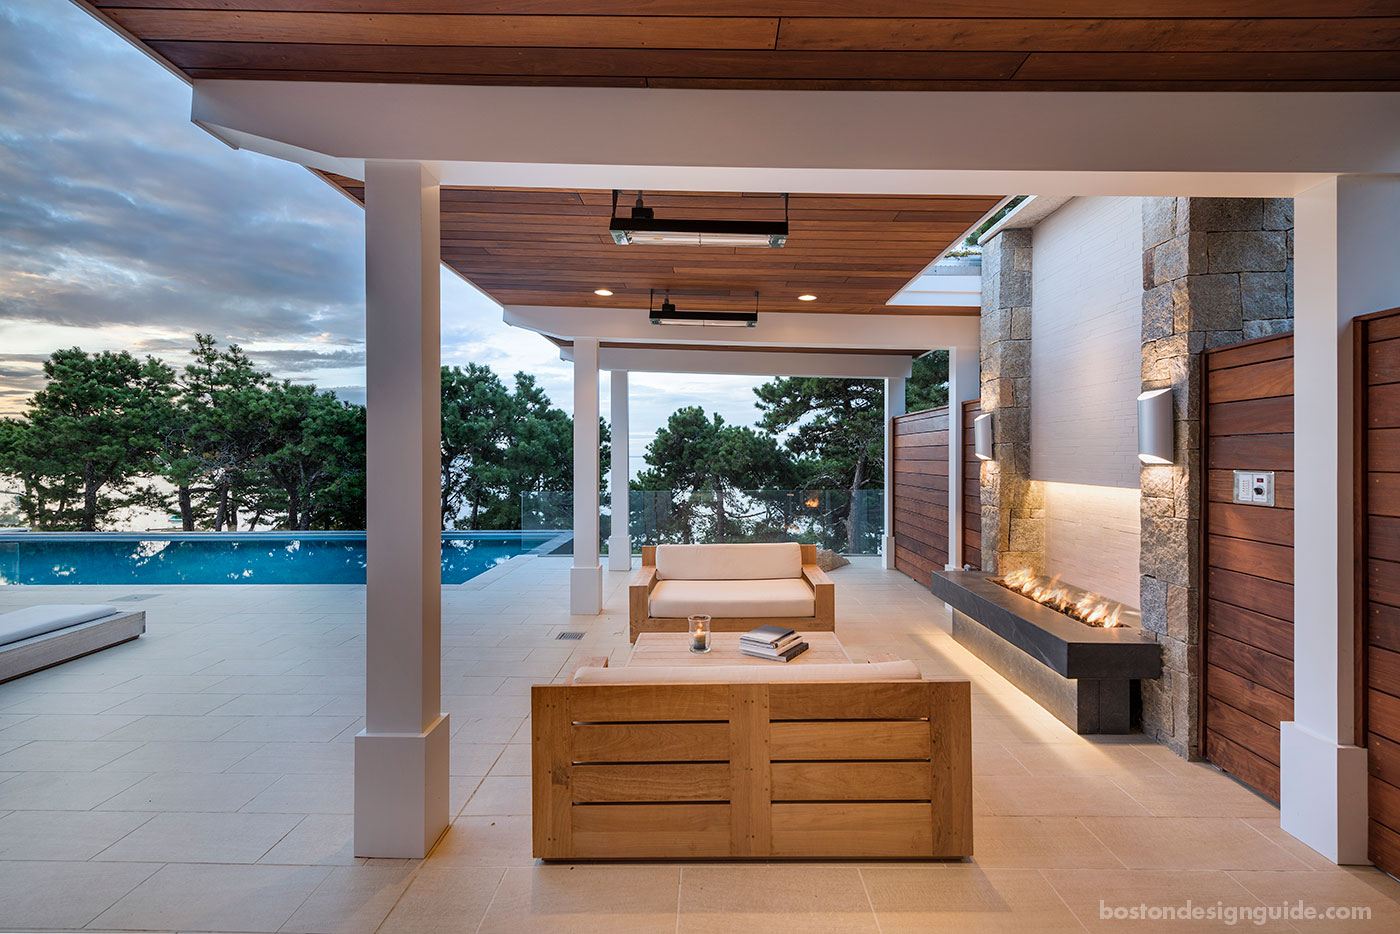 Pool terrace with fire feature and heat lamps by ZEN Associates, Inc.